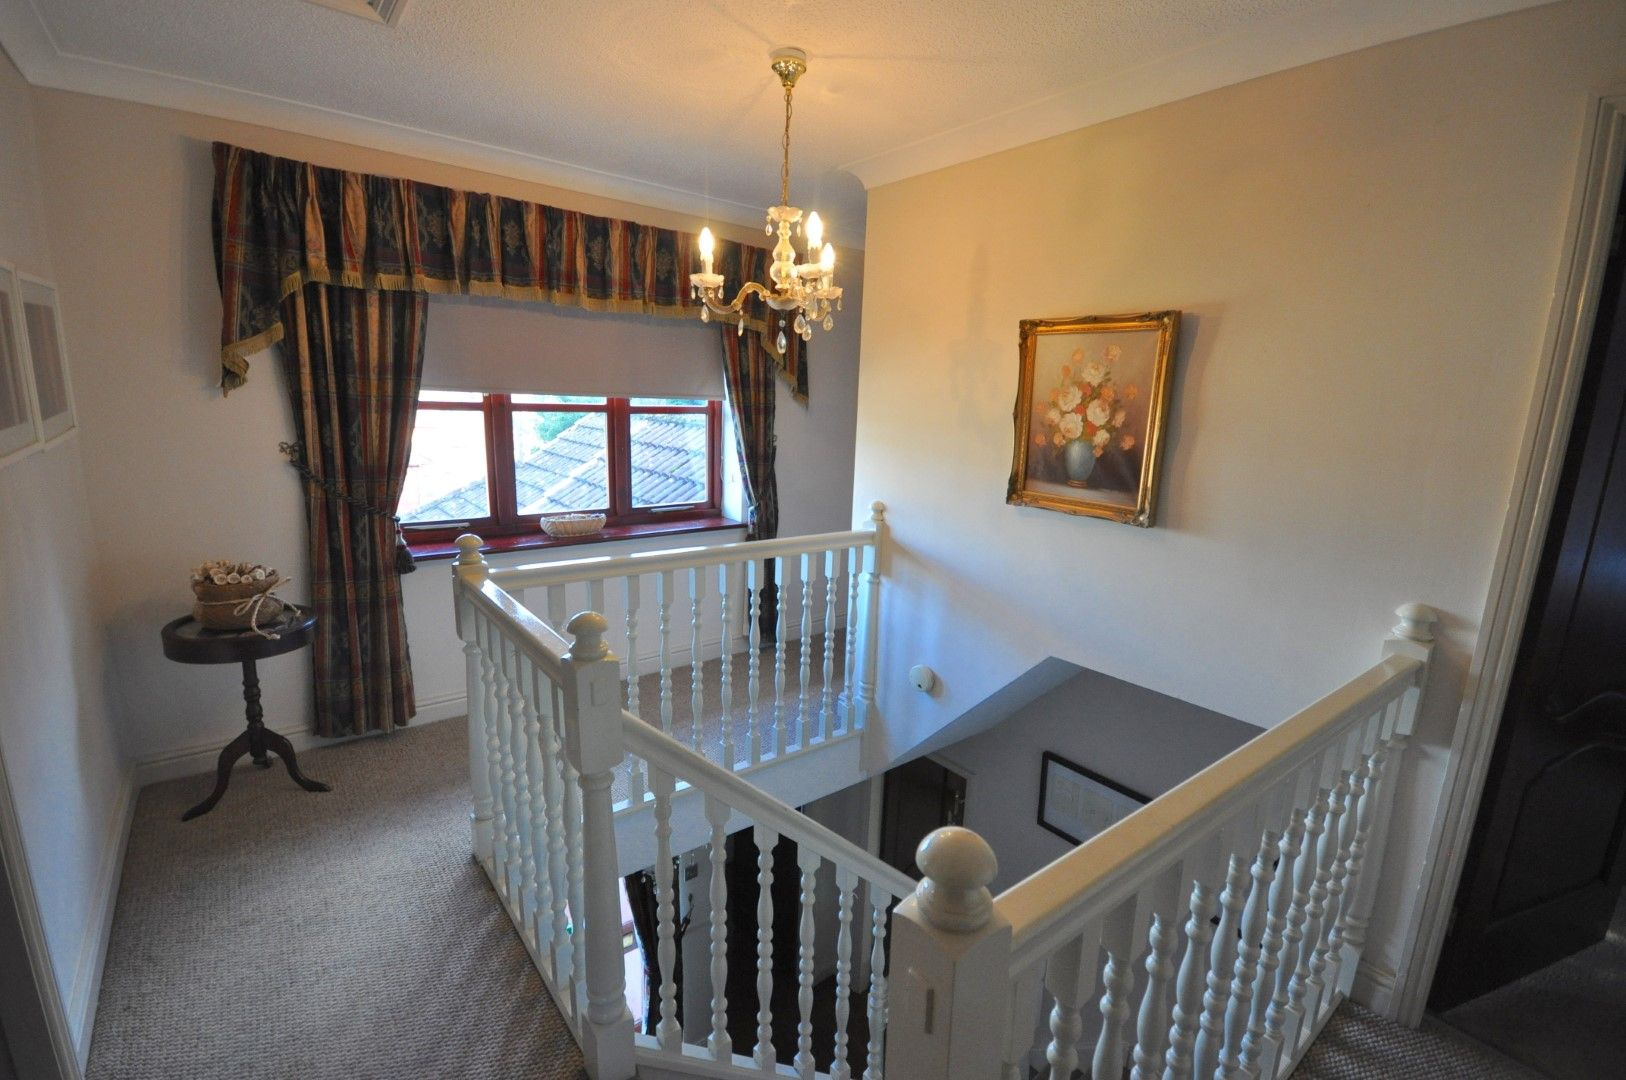 Image 1 of 1 of Upstairs landing, on Accommodation Comprising for